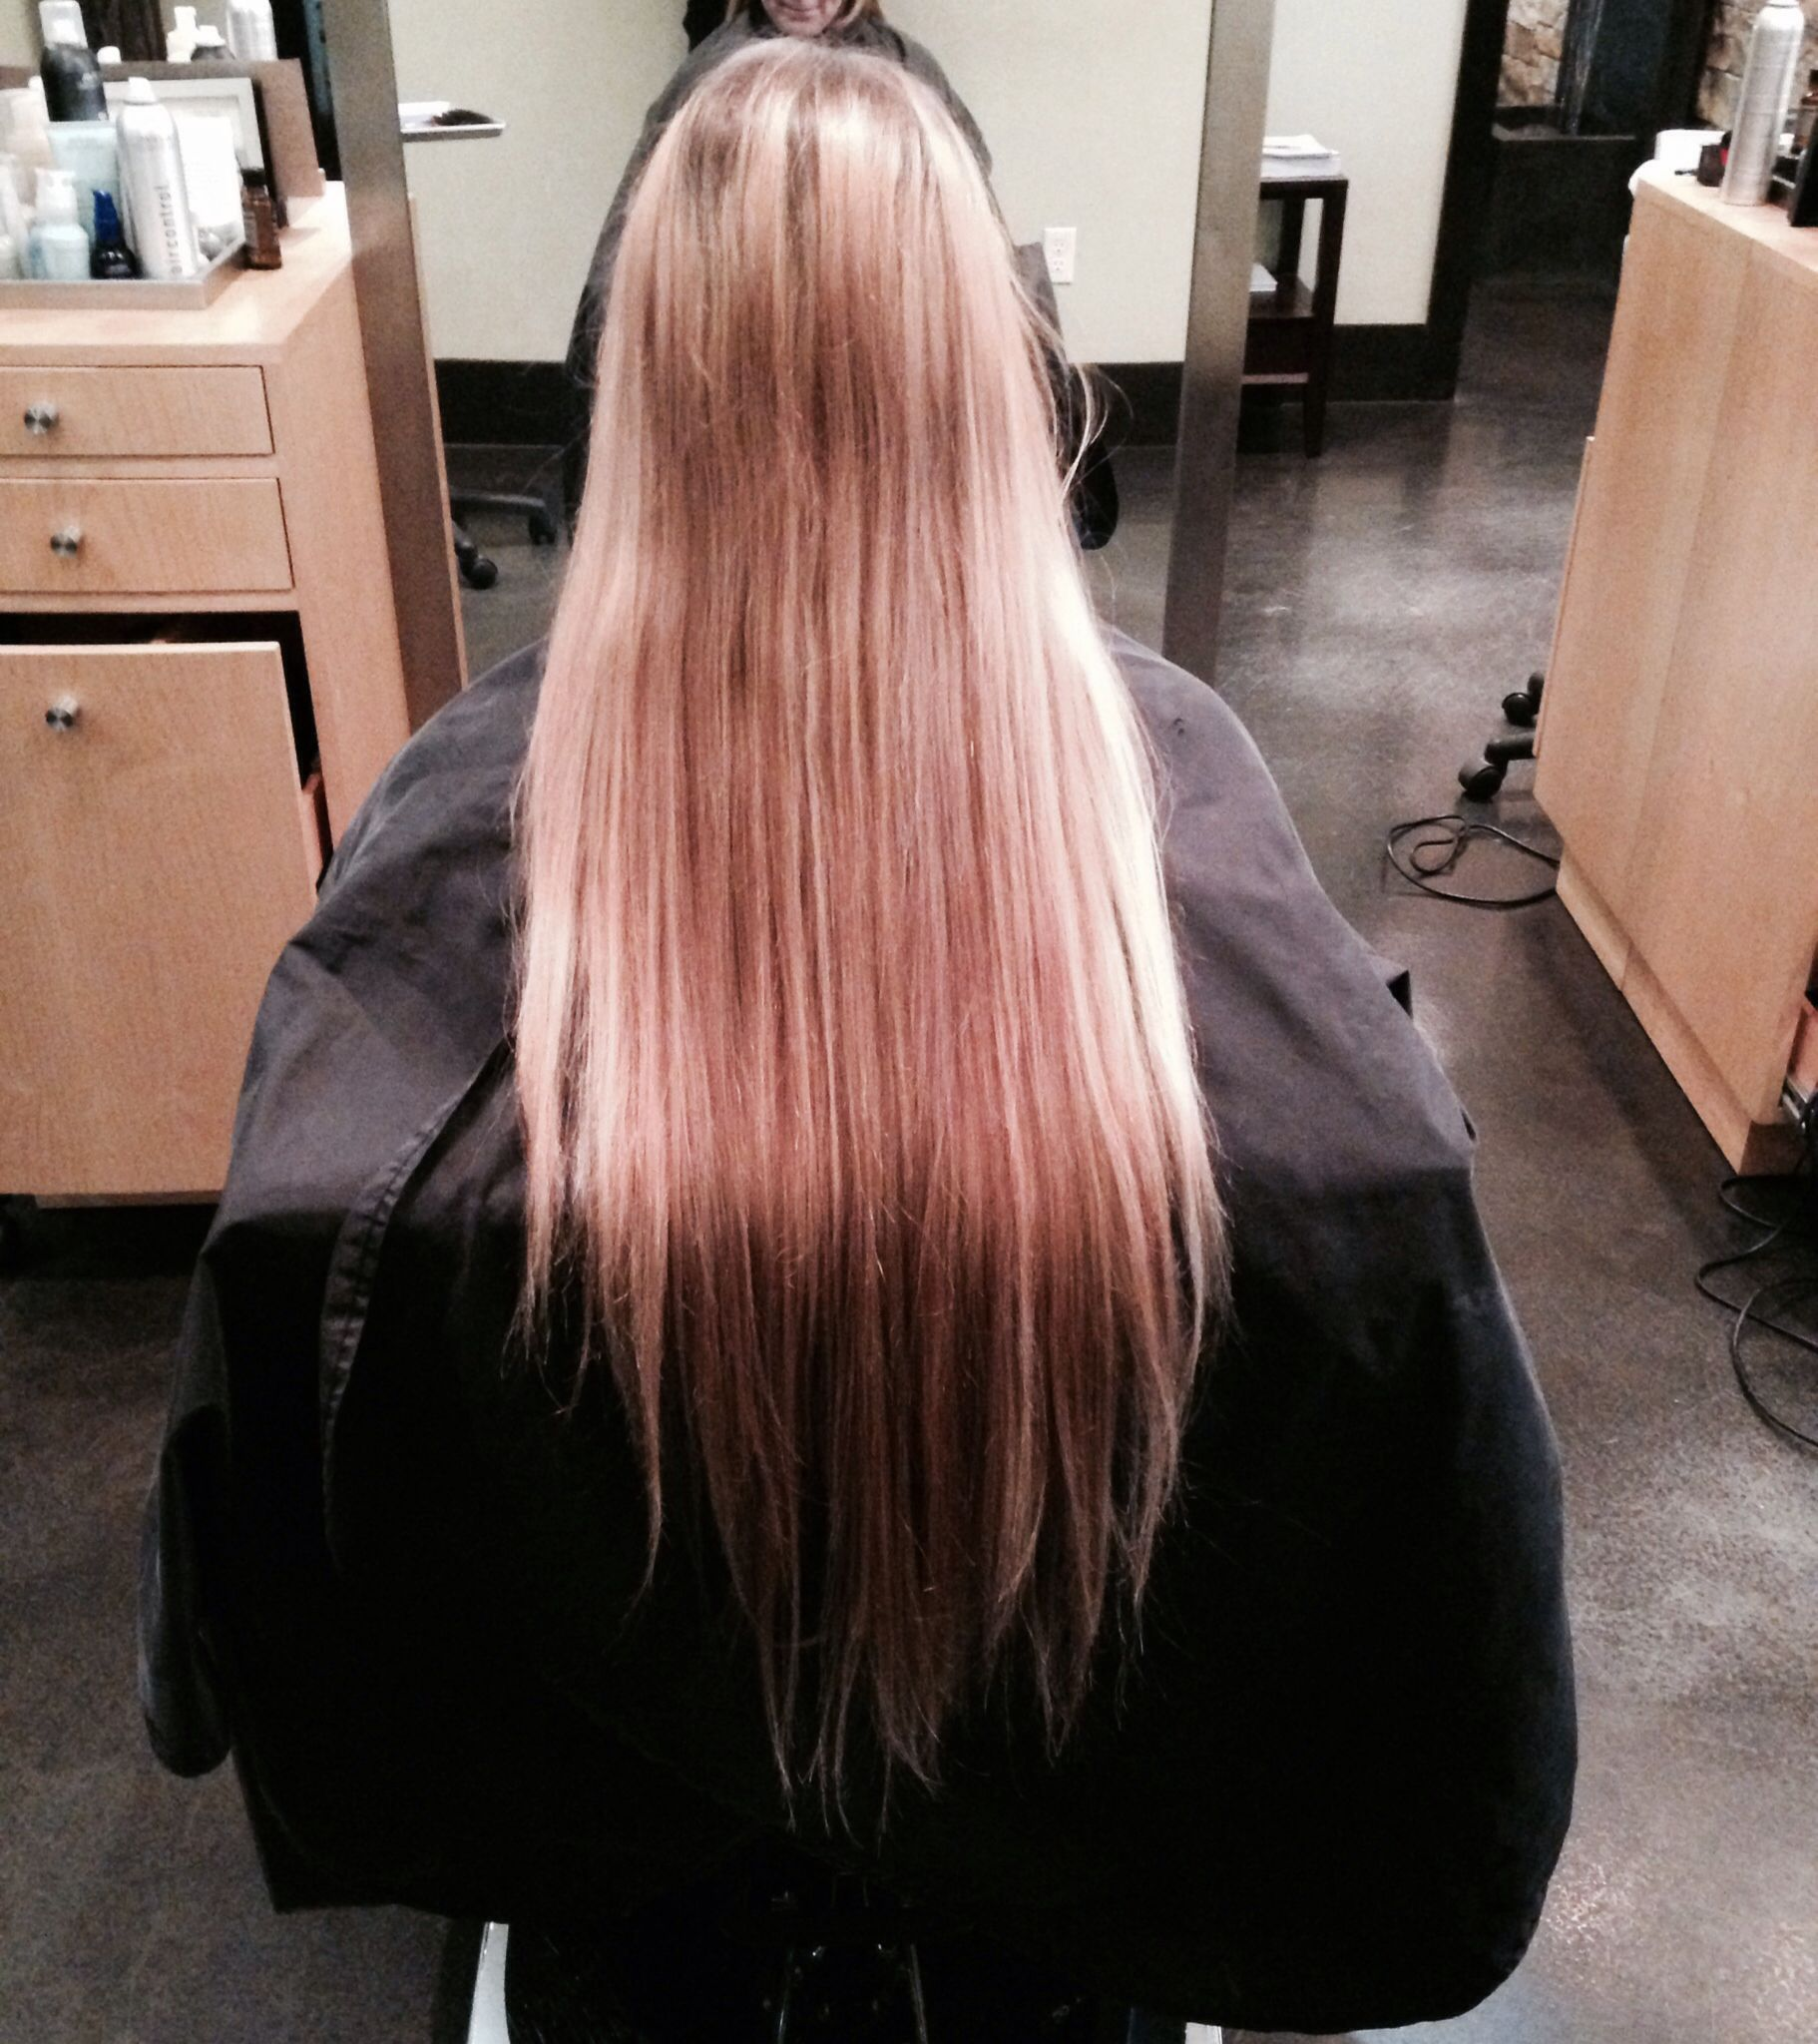 Long hairombredirty blond hairstraight hairhair salons makeup